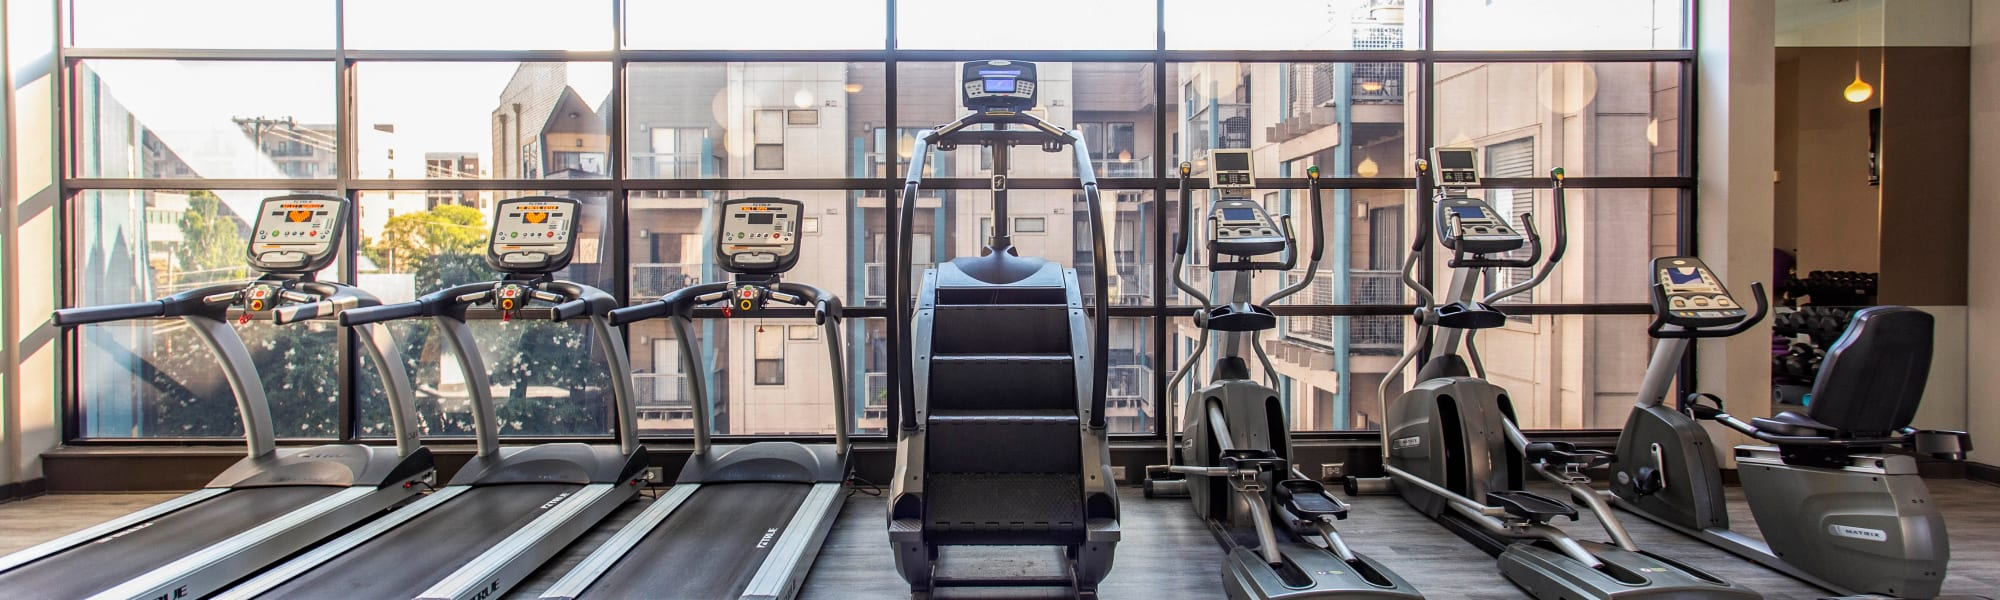 Amenities at Olympus Midtown in Nashville, Tennessee